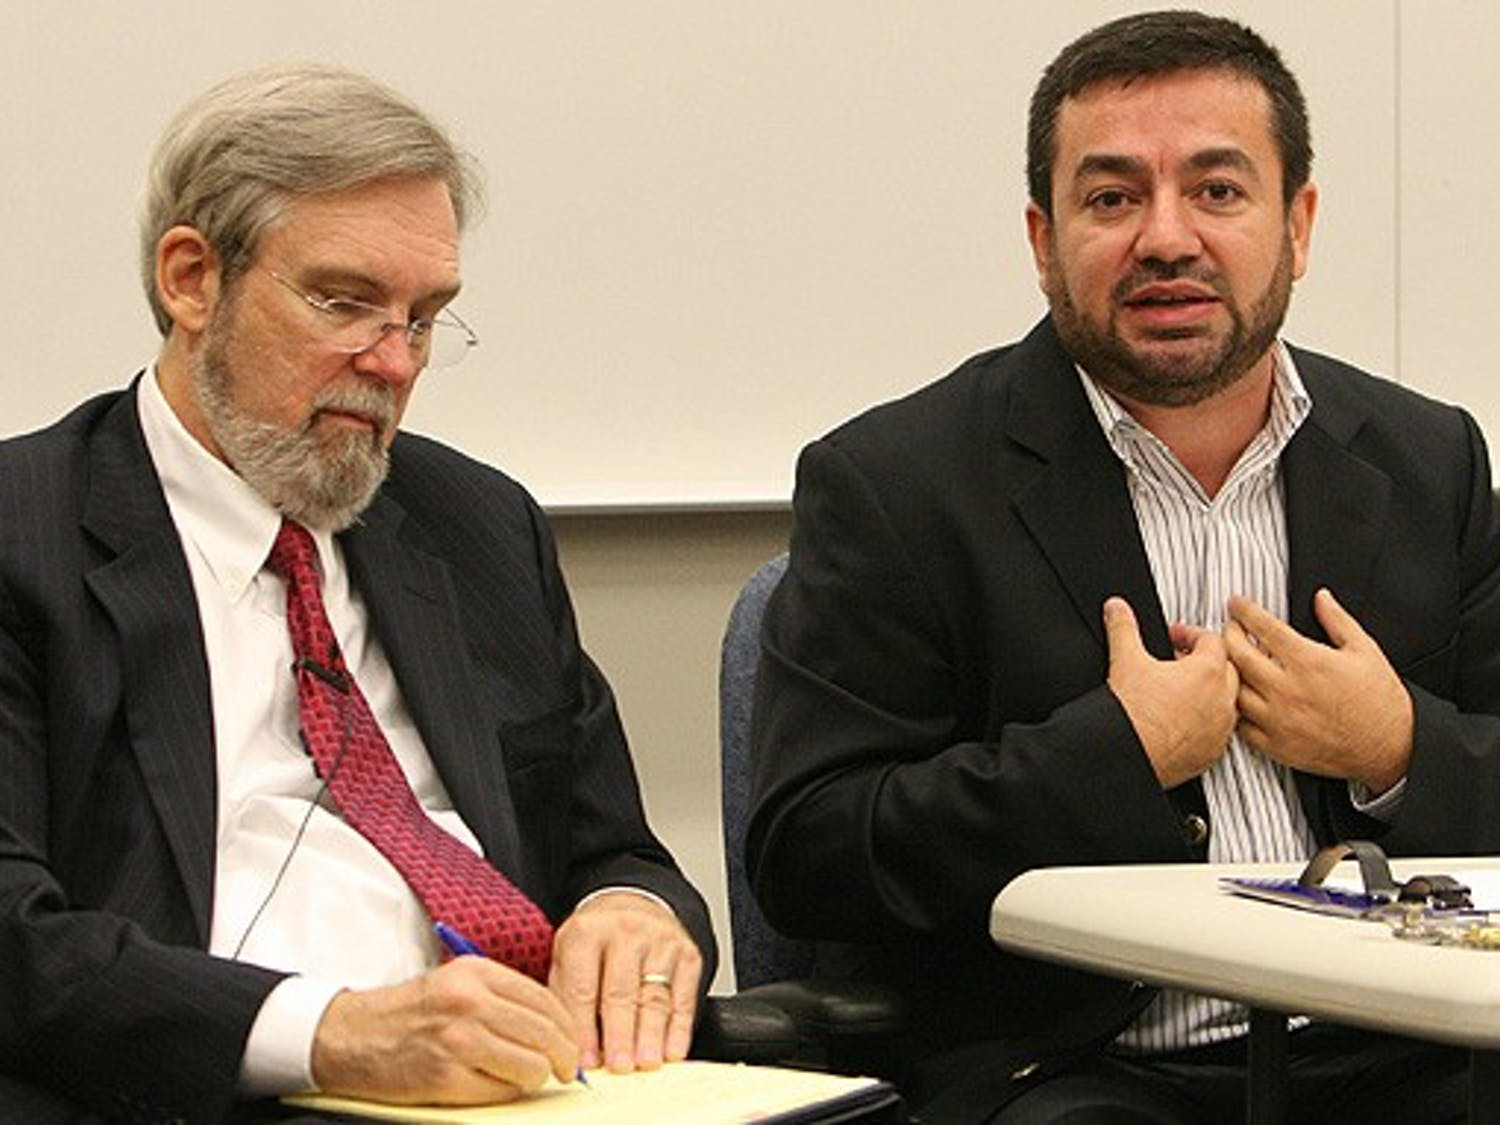 Muslim Chaplian Abdullah Antepli participated in the panel discussion Wednesday night.